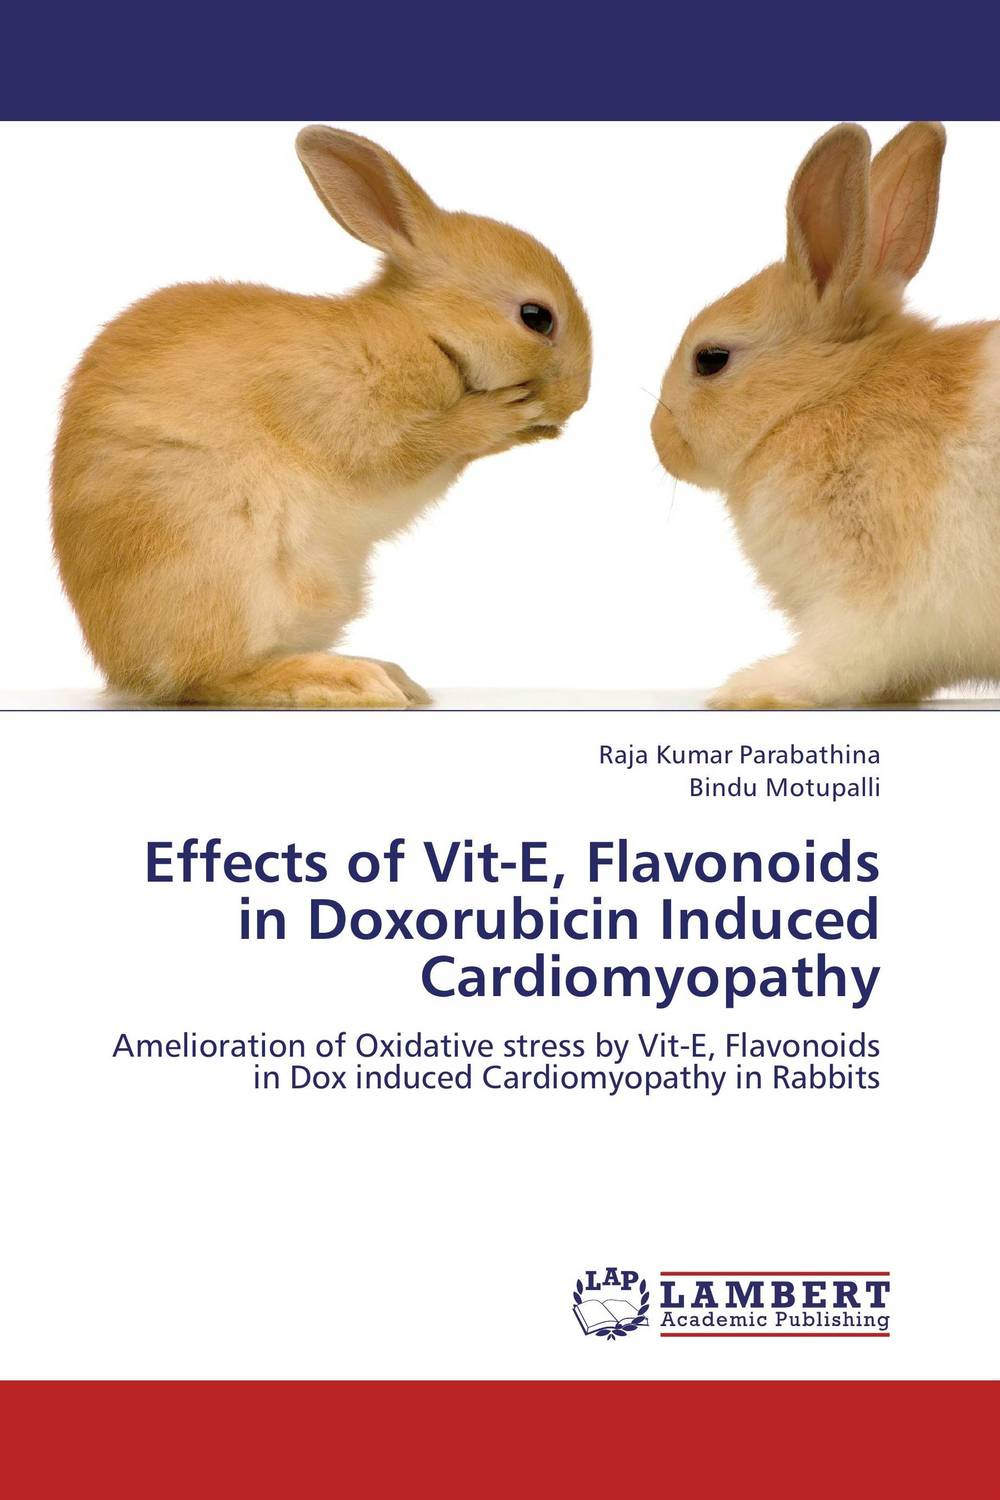 Effects of Vit-E, Flavonoids in Doxorubicin Induced Cardiomyopathy аксессуар чехол накладка asus zenfone live zb501kl skinbox silicone chrome border 4people gold t s azlzb501kl 008